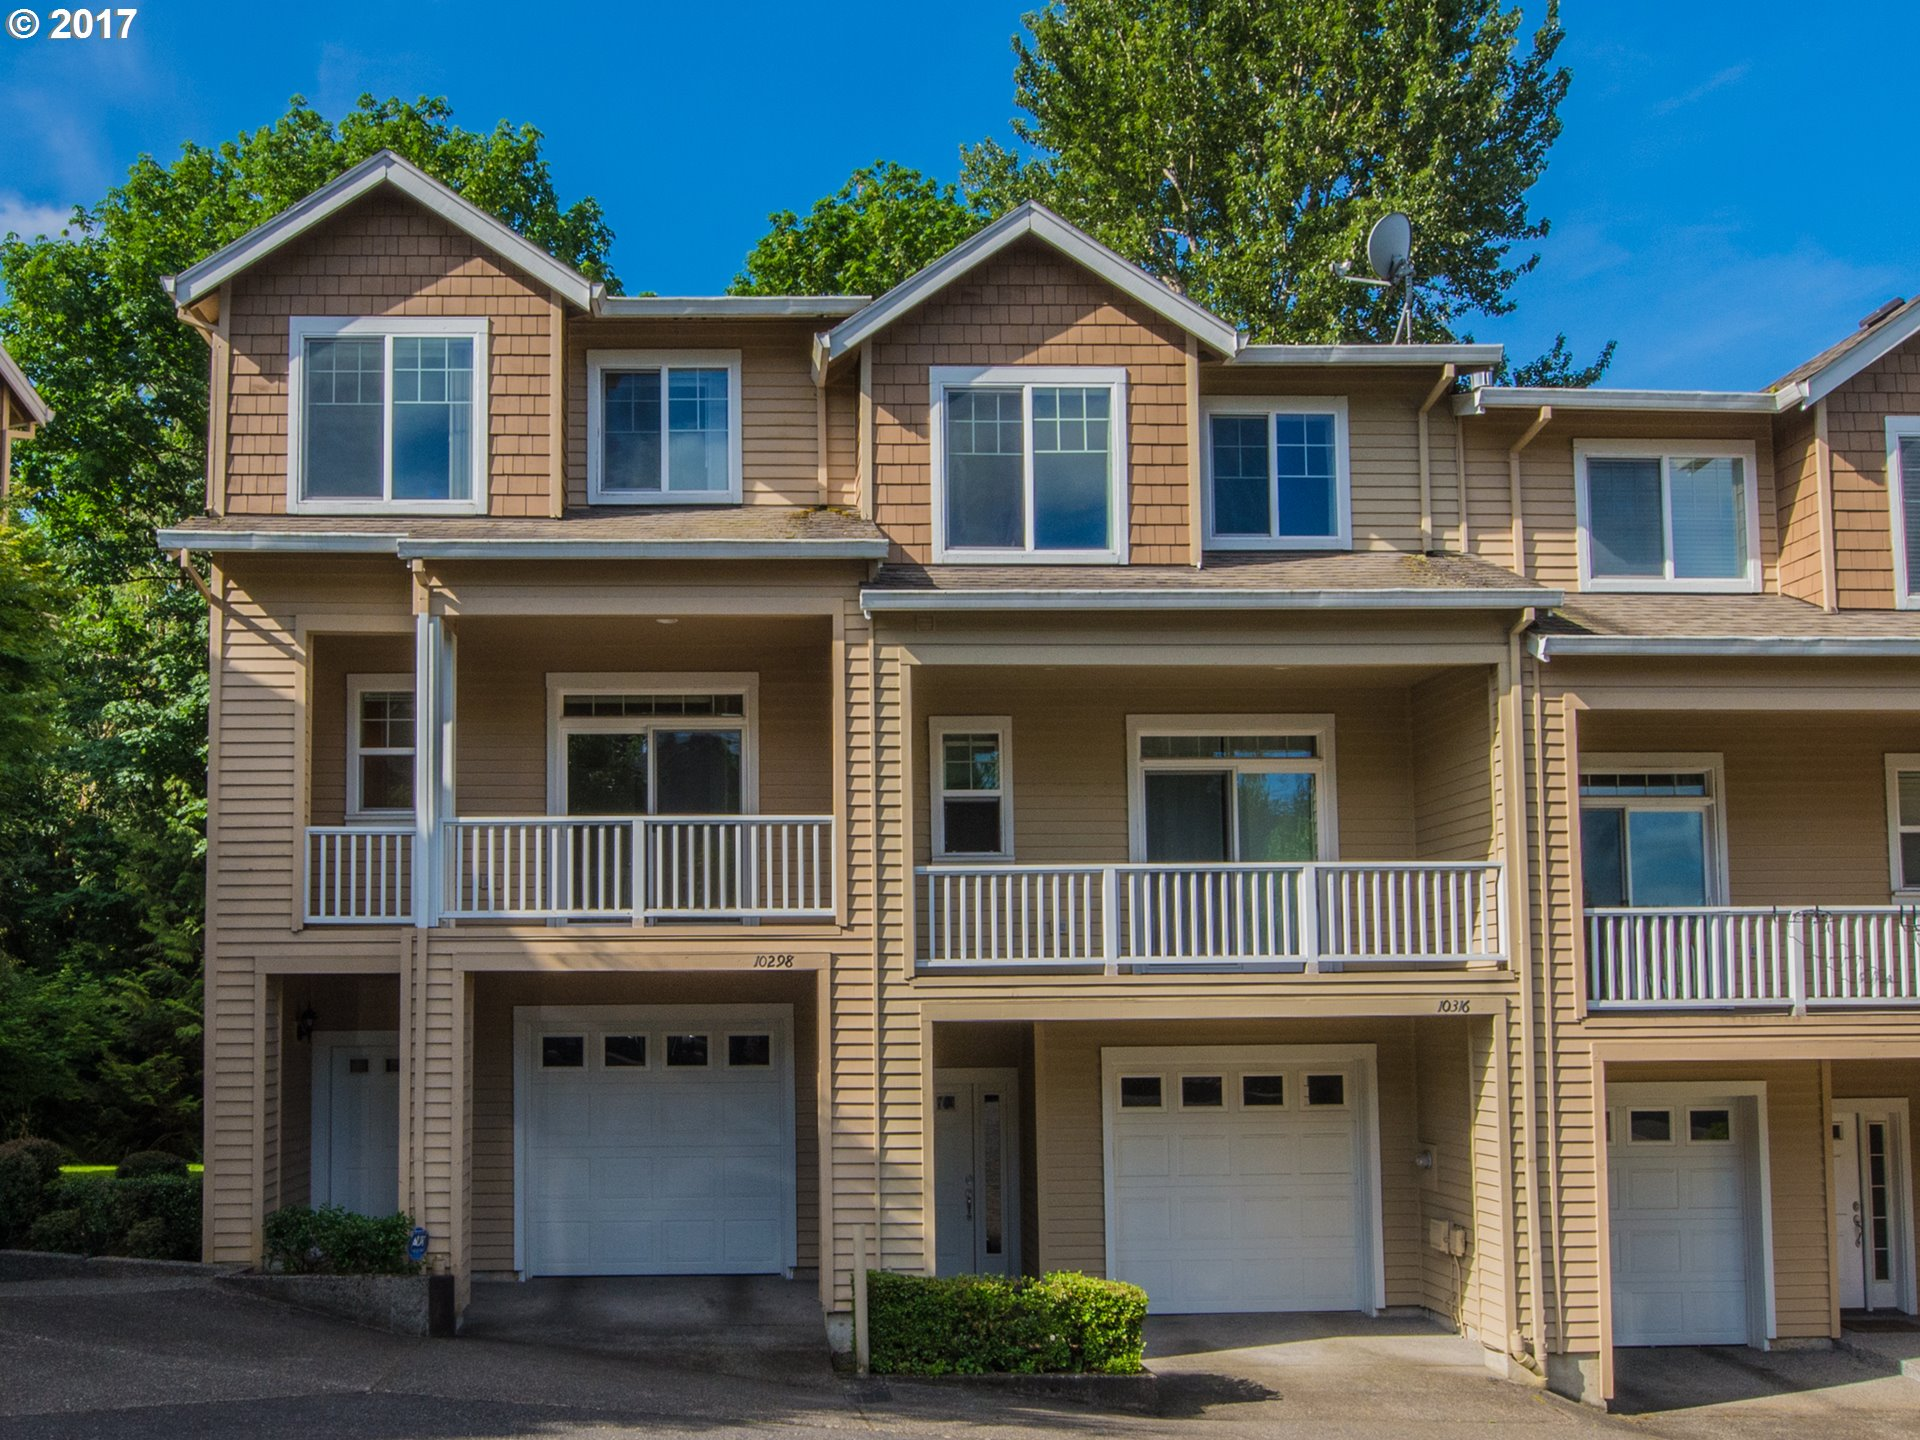 10298 NW FORESTVIEW WAY, Portland, OR 97229